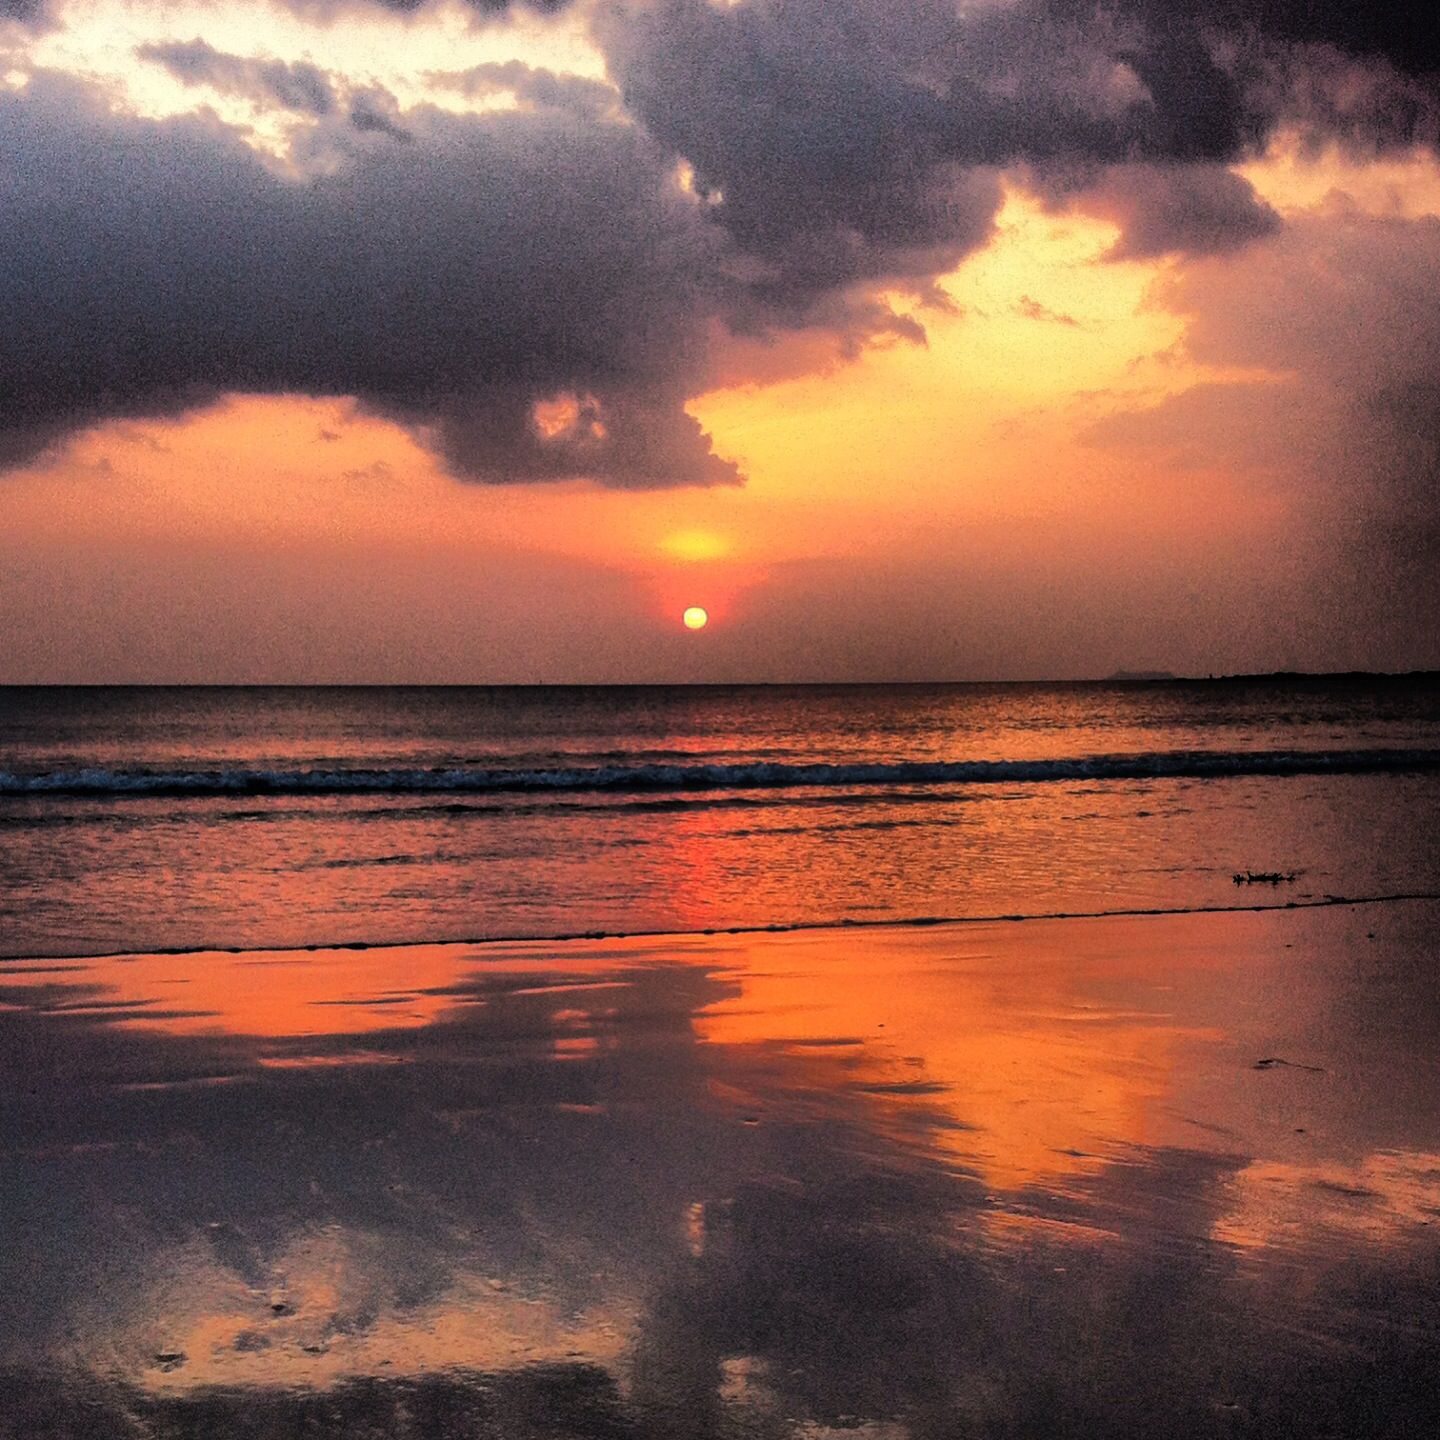 Sunset in Koh Lanta Island, Thailand. (With images